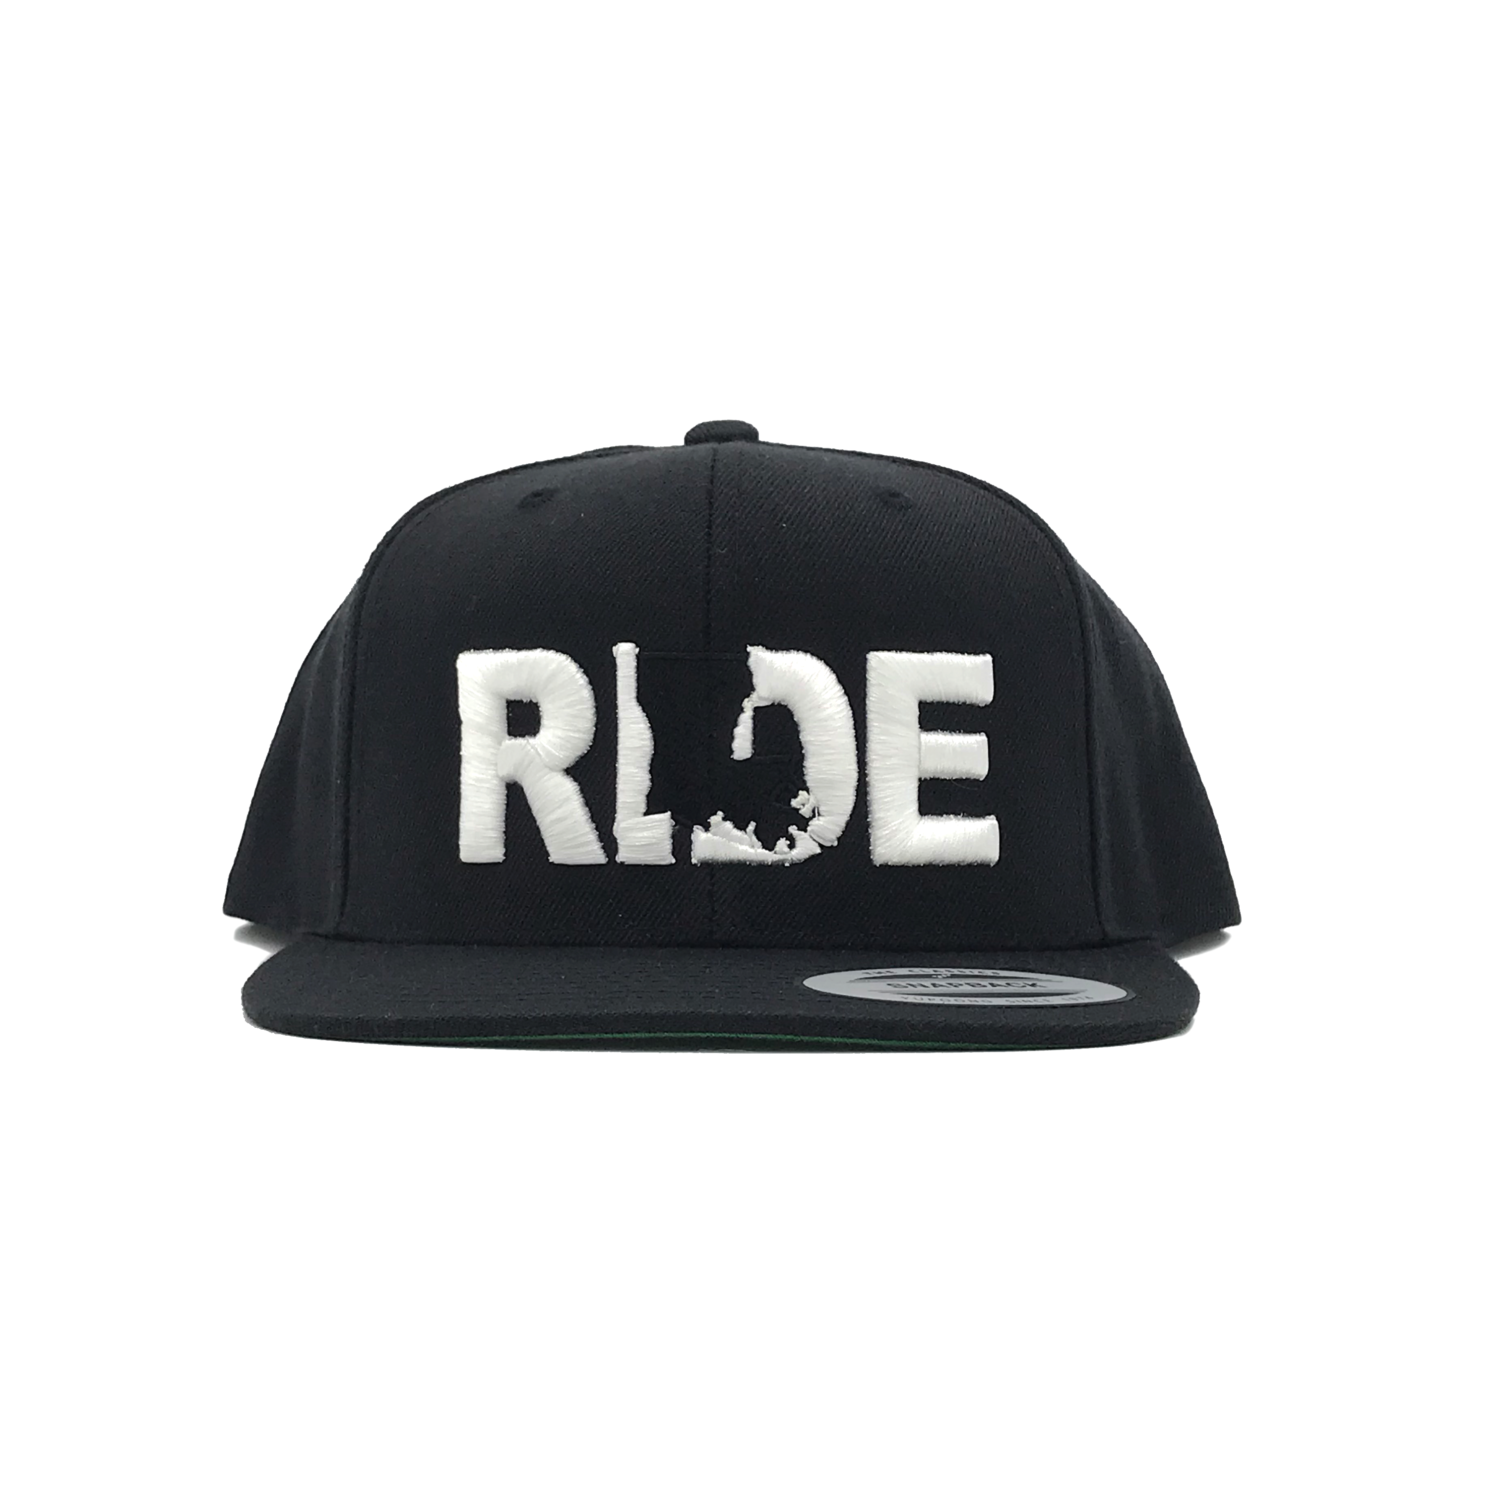 Ride Louisiana Classic Embroidered  Snapback Flat Brim Hat Black/White